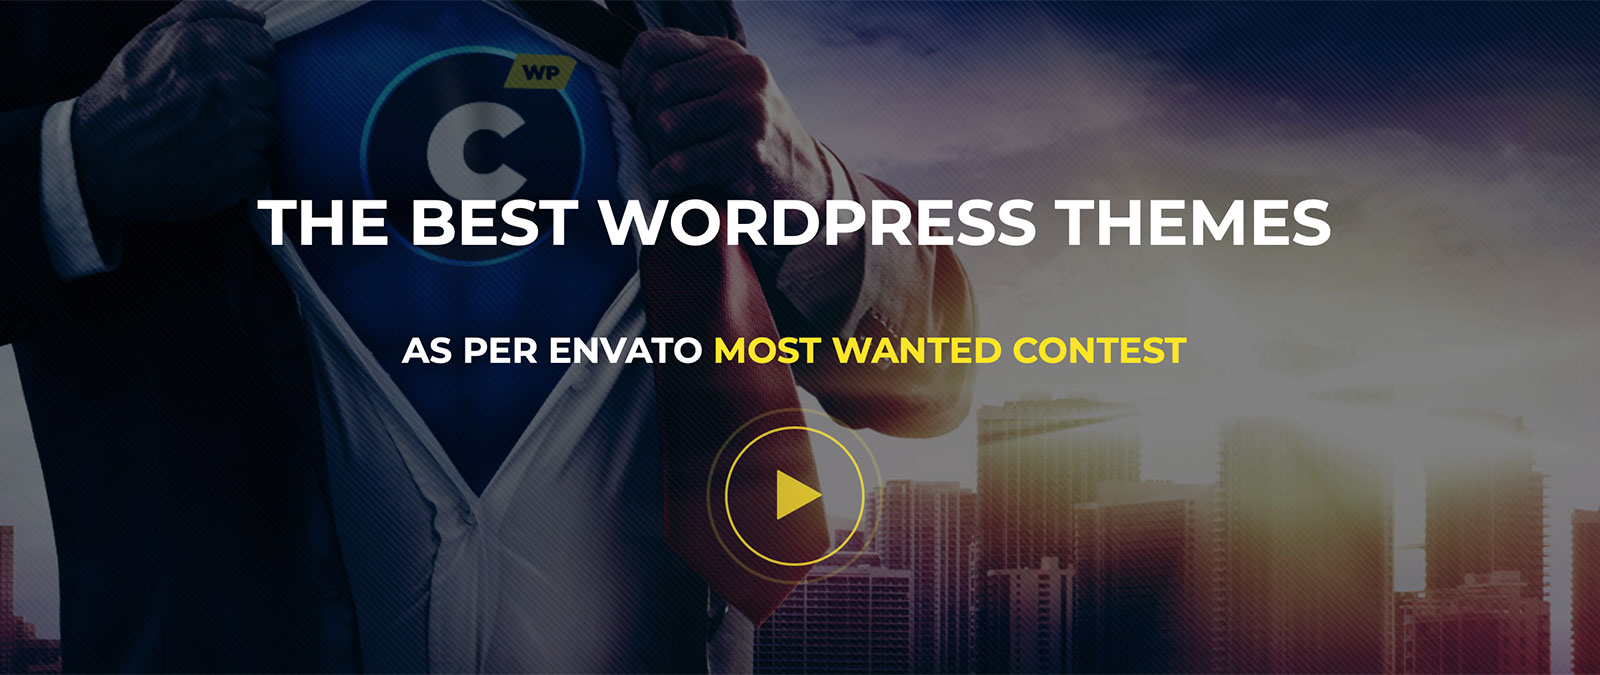 best wordpress themes 1